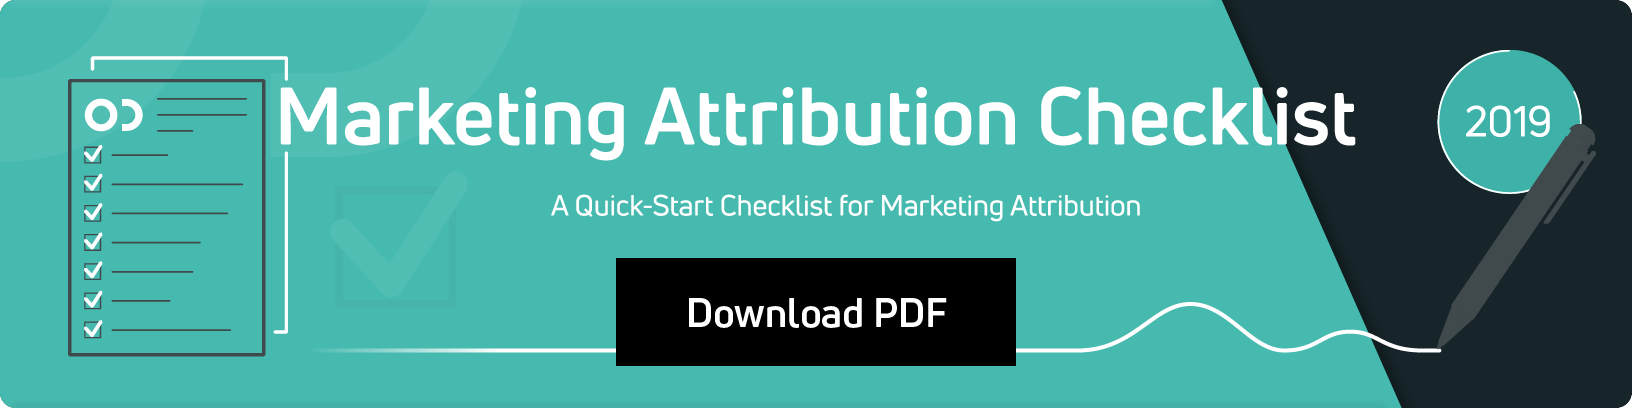 Marketing Attribution Checklist 2019